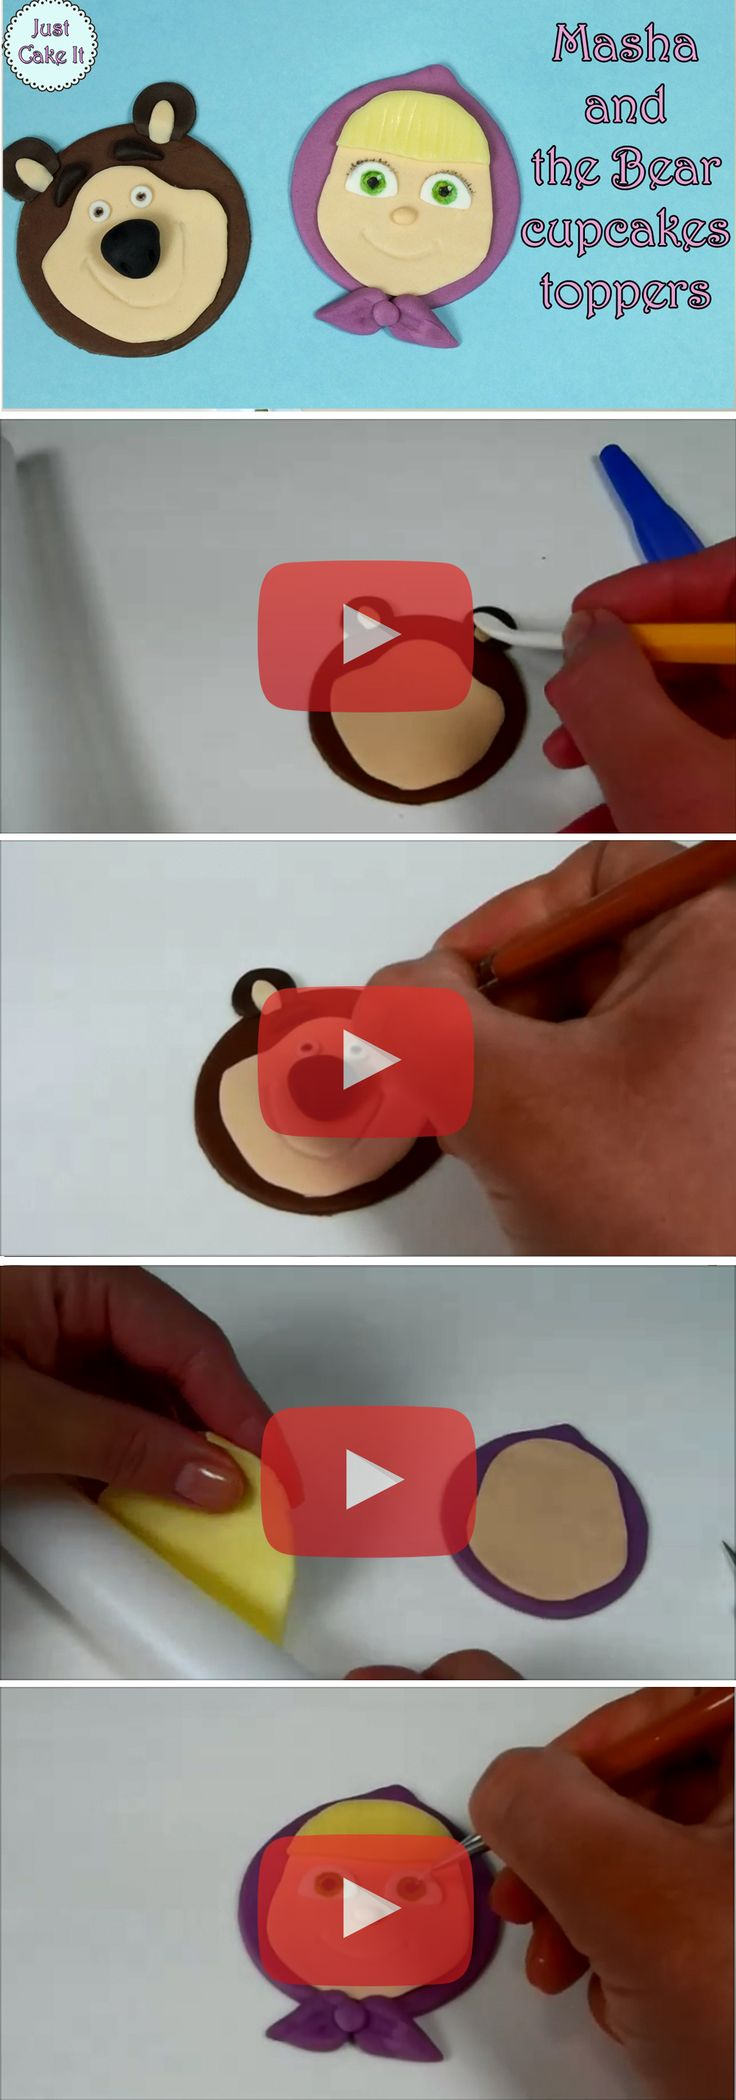 Easy step by step tutorial for Masha and the Bear cupcakes toppers fondant decoration, watch the tutorial here https://www.youtube.com/watch?v=d_5TXVrEuxA